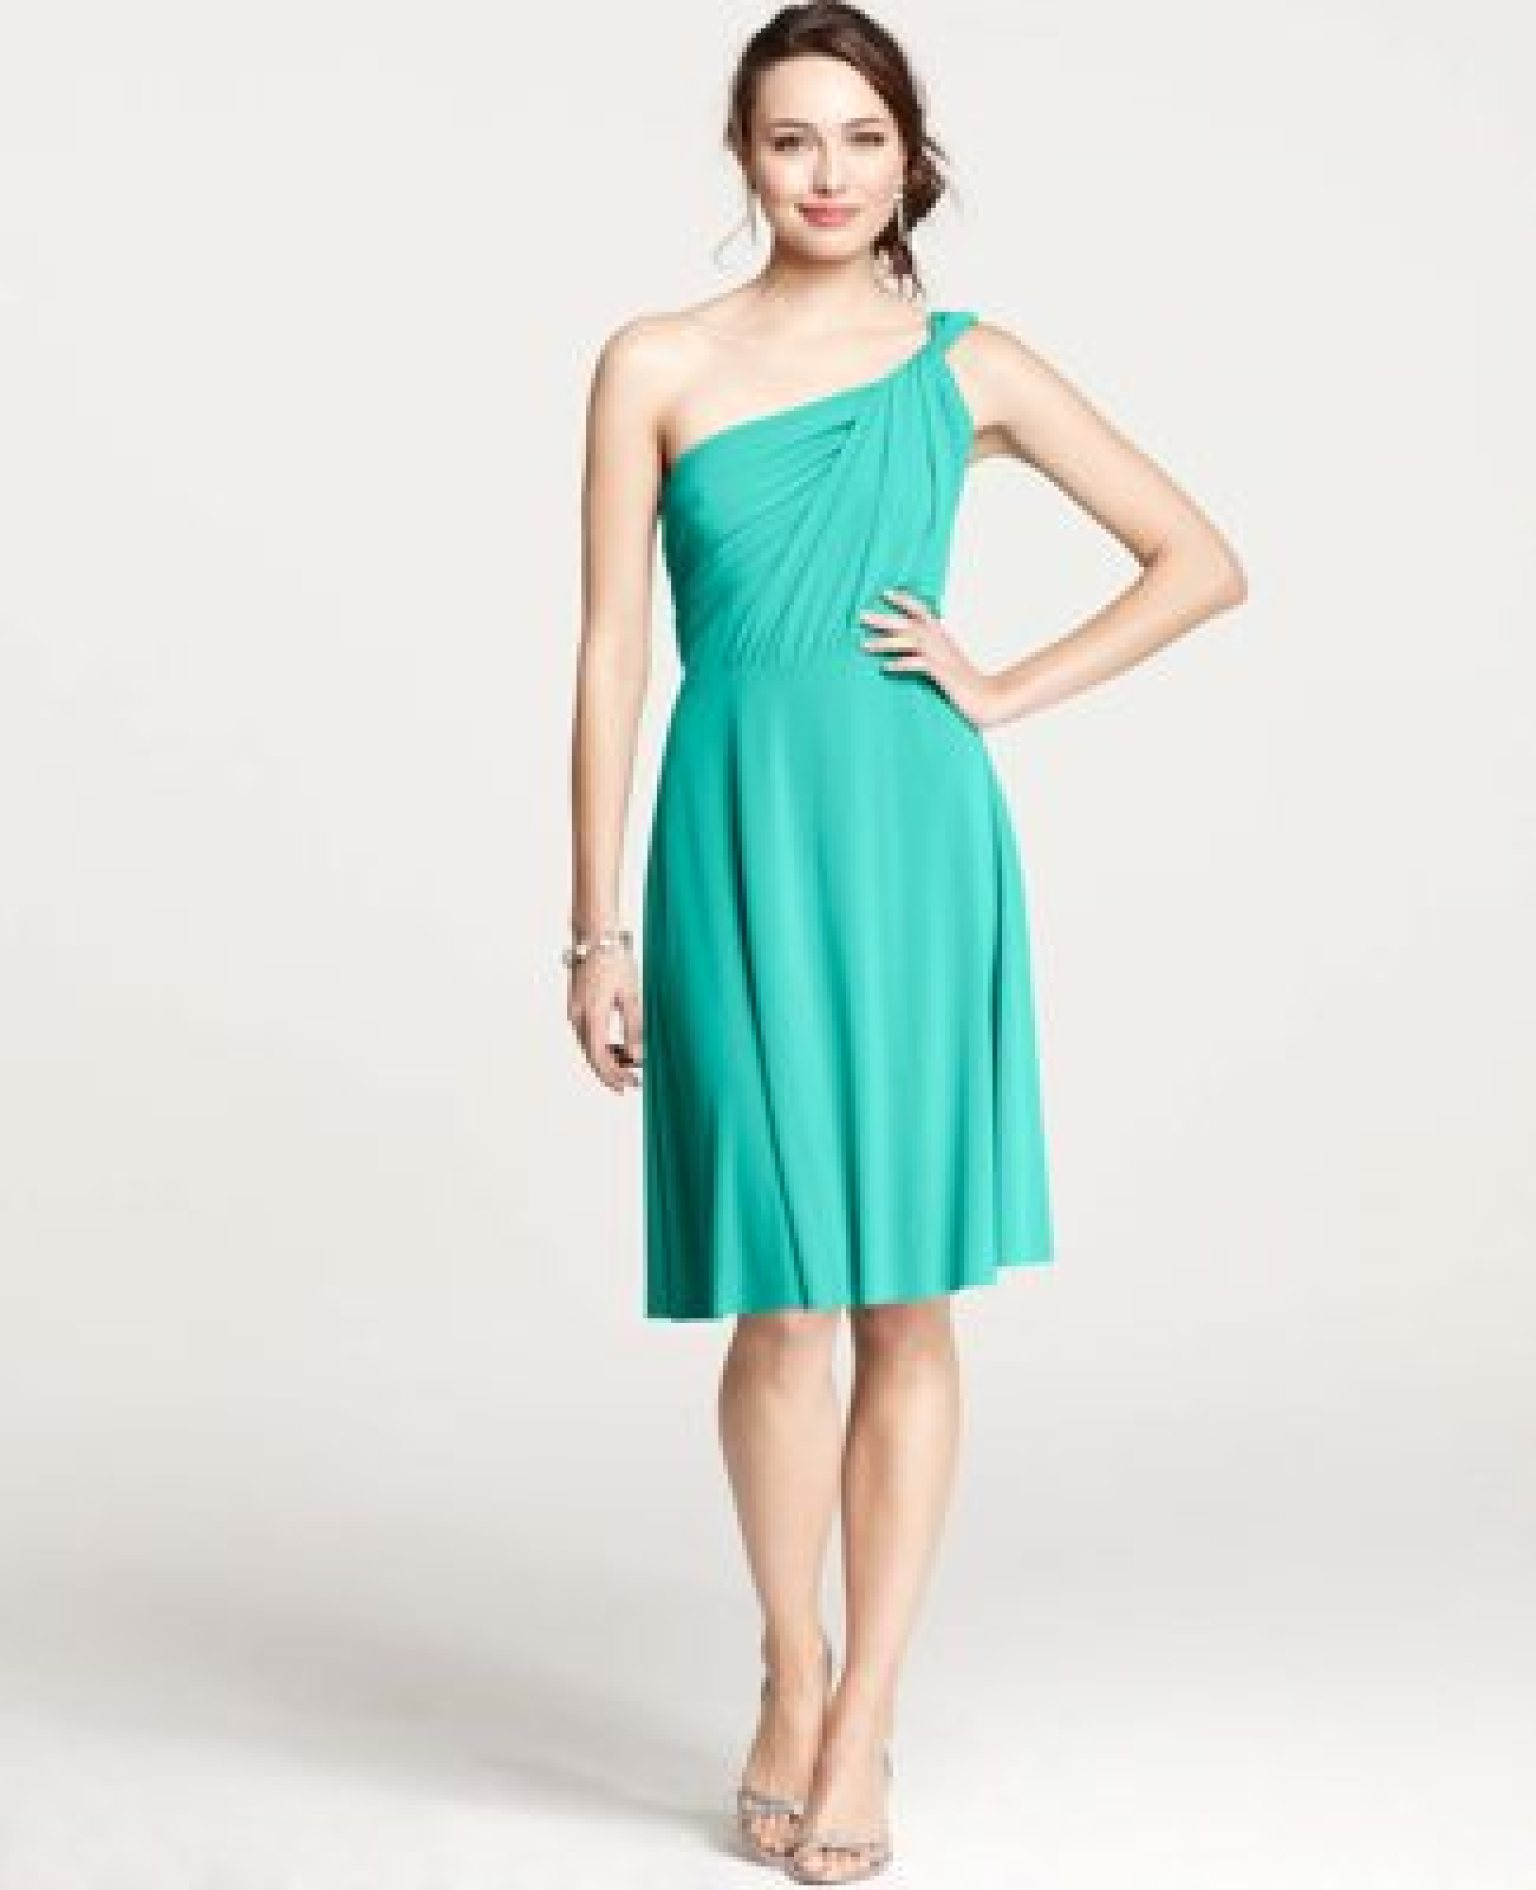 Wedding guest dresses for summer affairs photos huffpost for Guest of wedding dresses